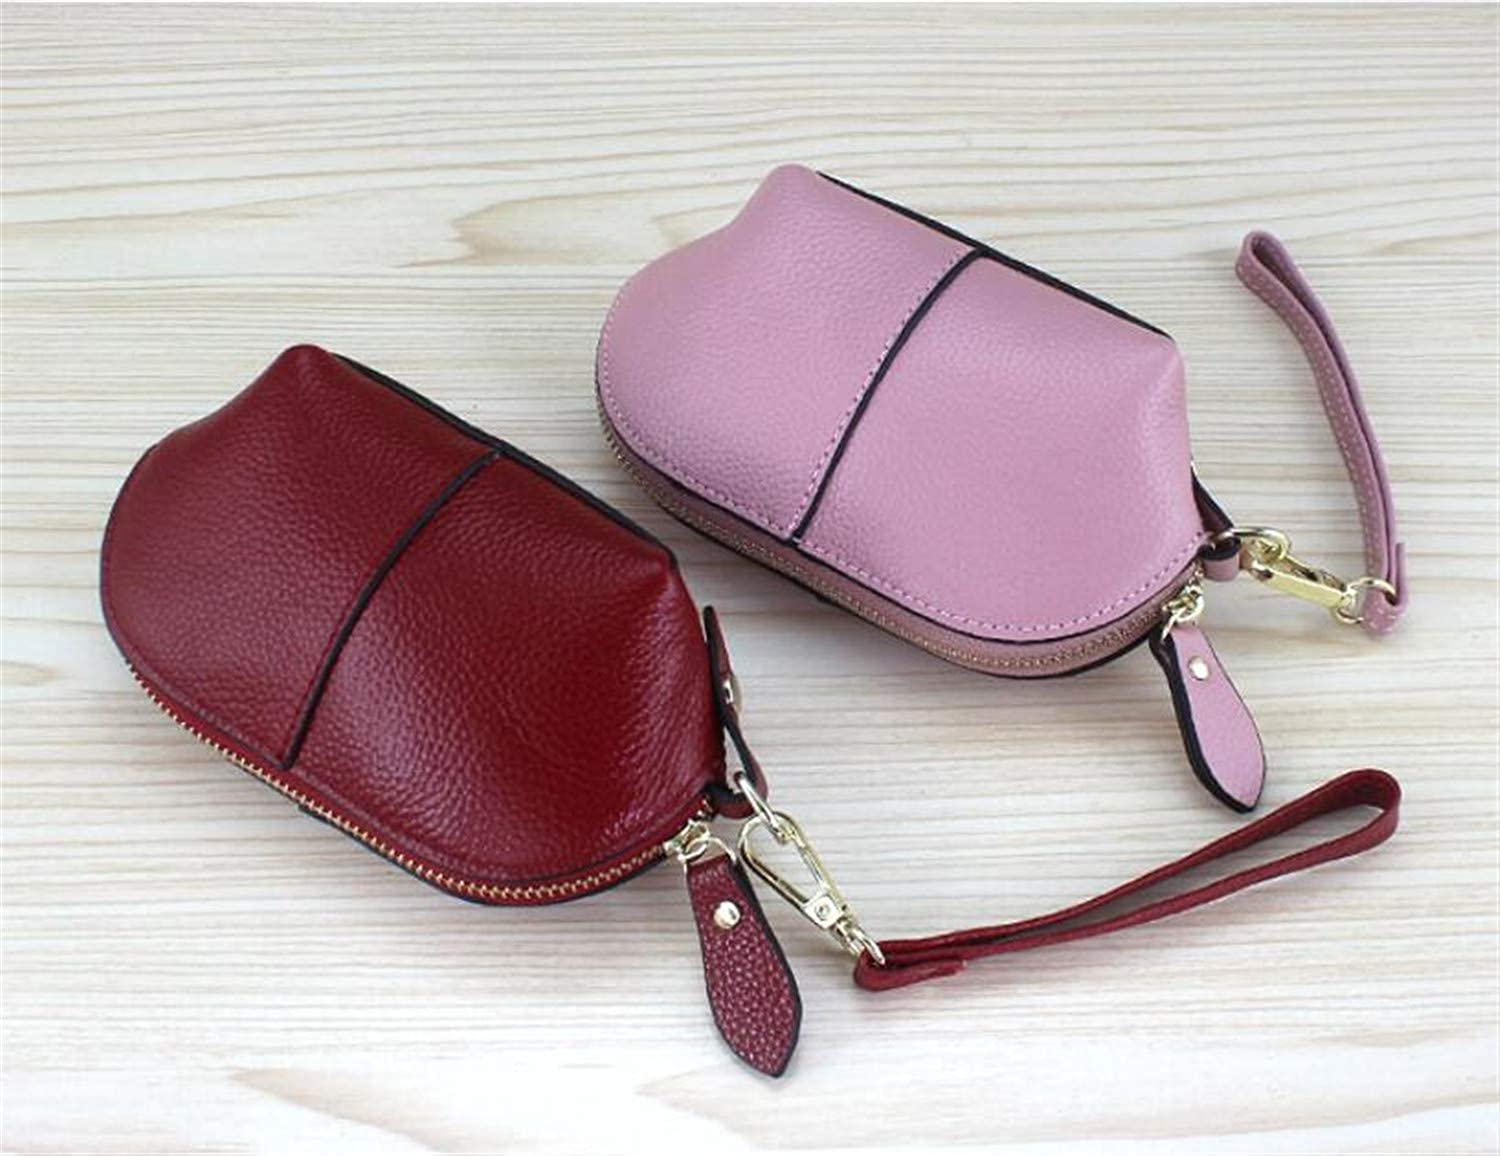 Ladies Handbag Wallet Genuine Leather Woman Mini Hand Holding Coin Bag European and American Style Fashion Small Coin Zipper Pocket Small Clutch Bag (color   Couple 2)